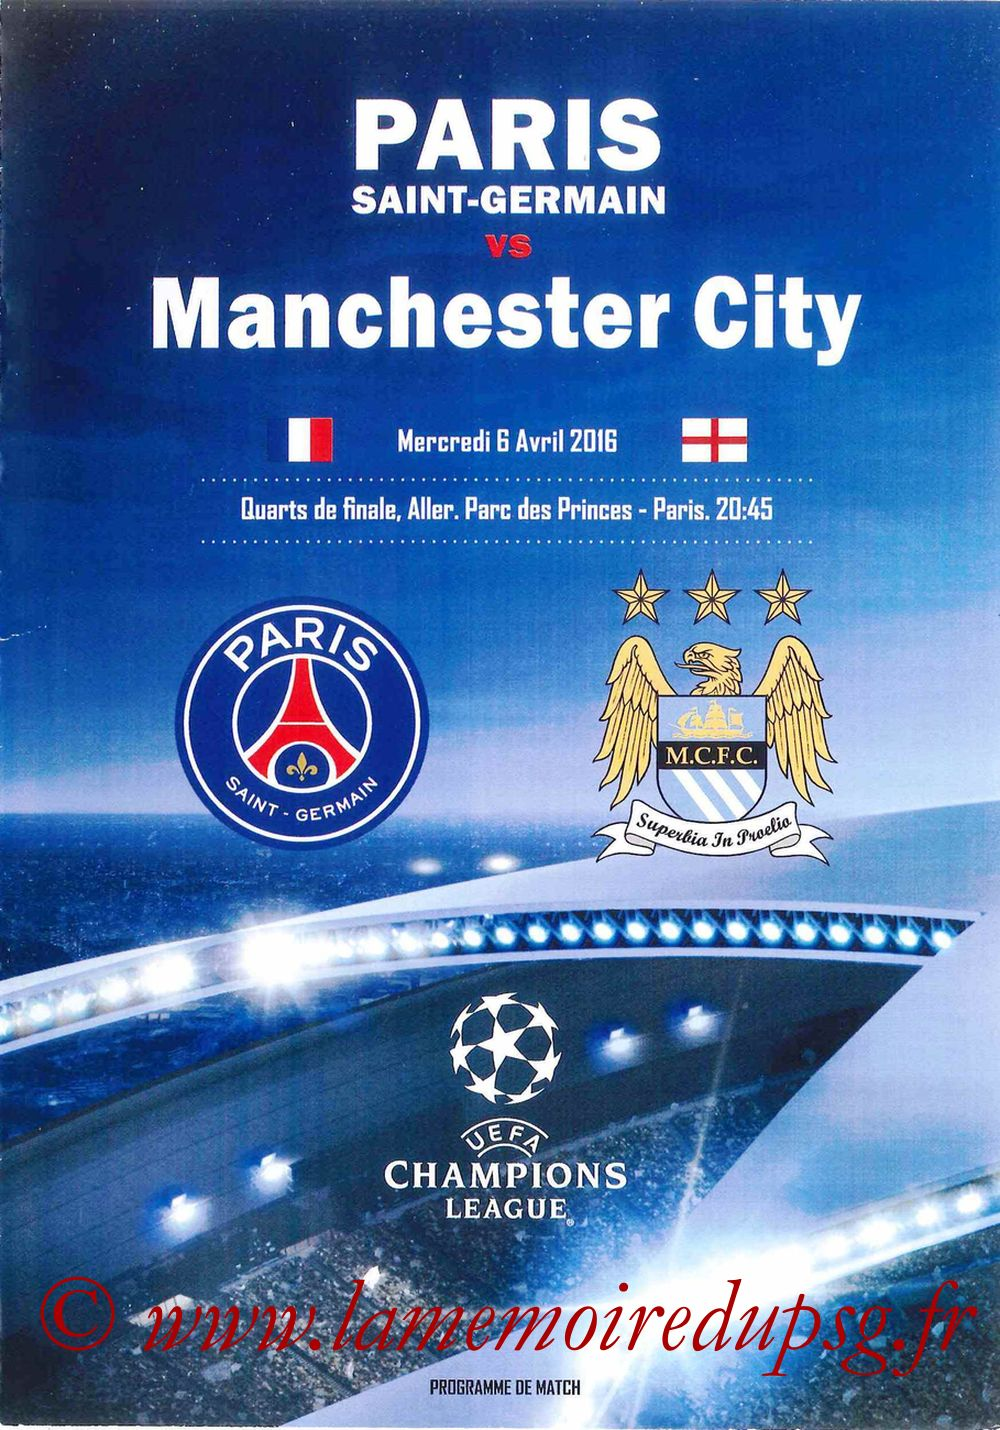 2016-04-06  PSG-Manchester City (Quart C1 Aller, Programme pirate2)